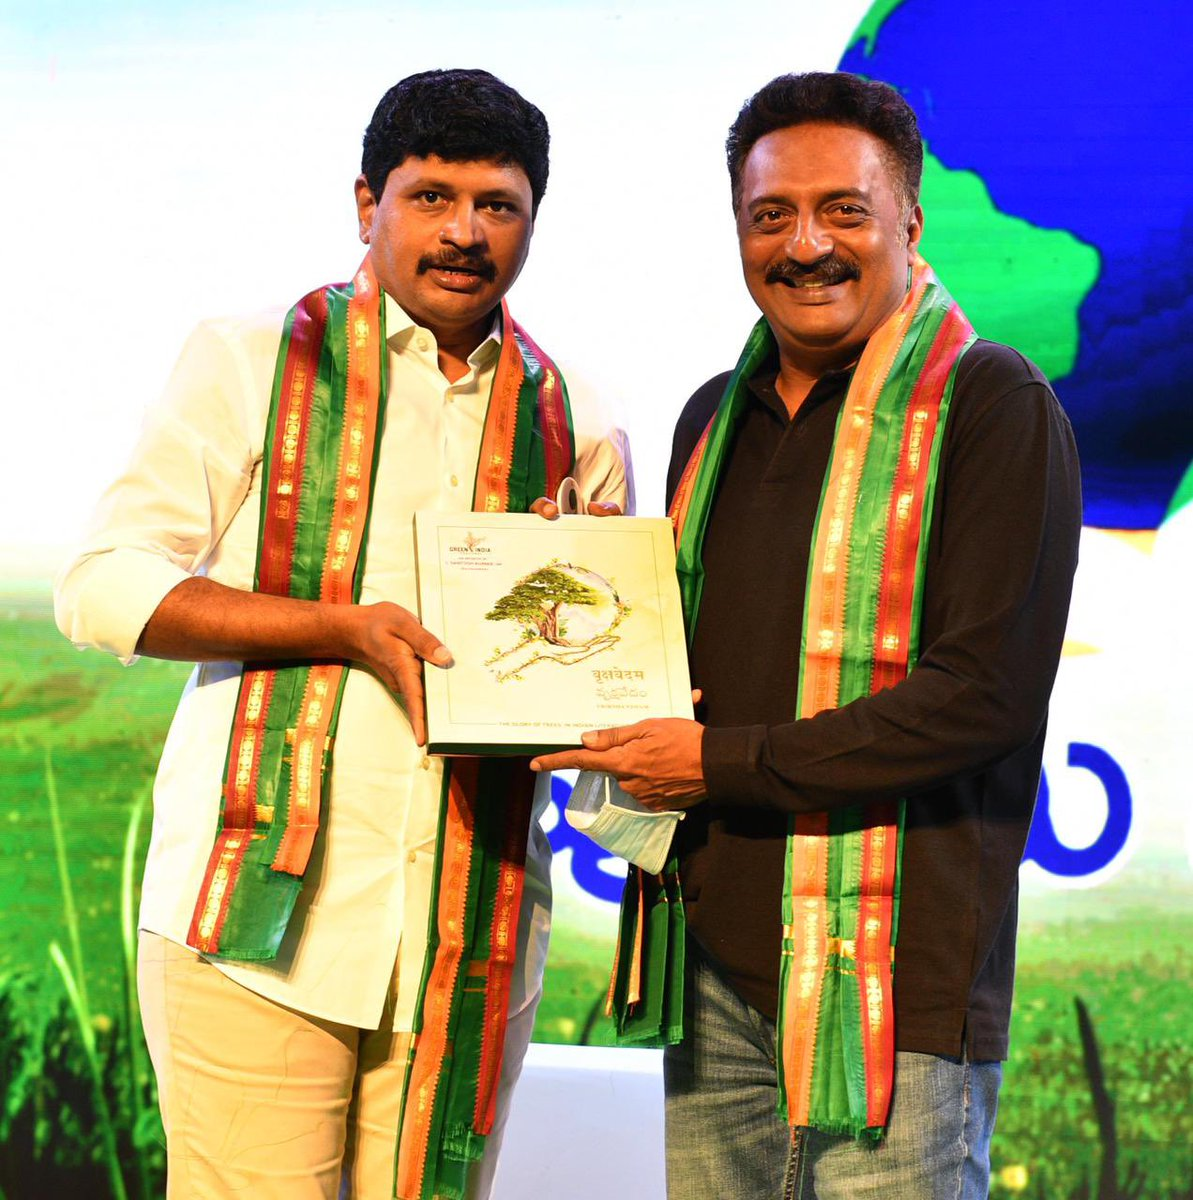 Presented #Vrikshavedam book to #Tollywood film fraternity @prakashraaj @PuriJagan #ActorAli  @Charmmeofficial @iam_RenuDesai and @sakshinews #HariKrishna who were delighted to have the unique book with them, that explains the effects of #GreenIndiaChallenge 🌱🌱🌱.